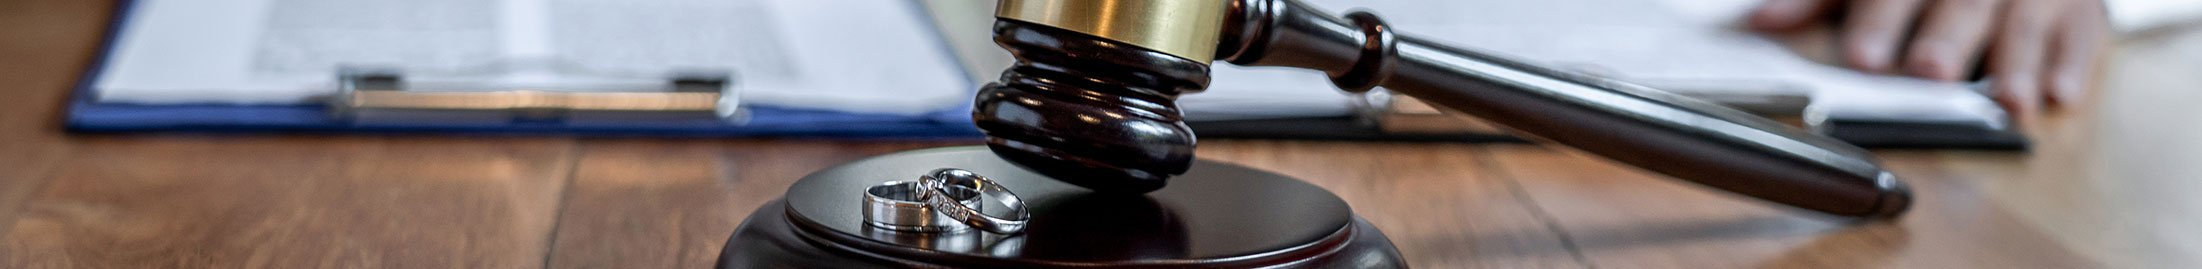 gavel with two wedding rings, showing divorce